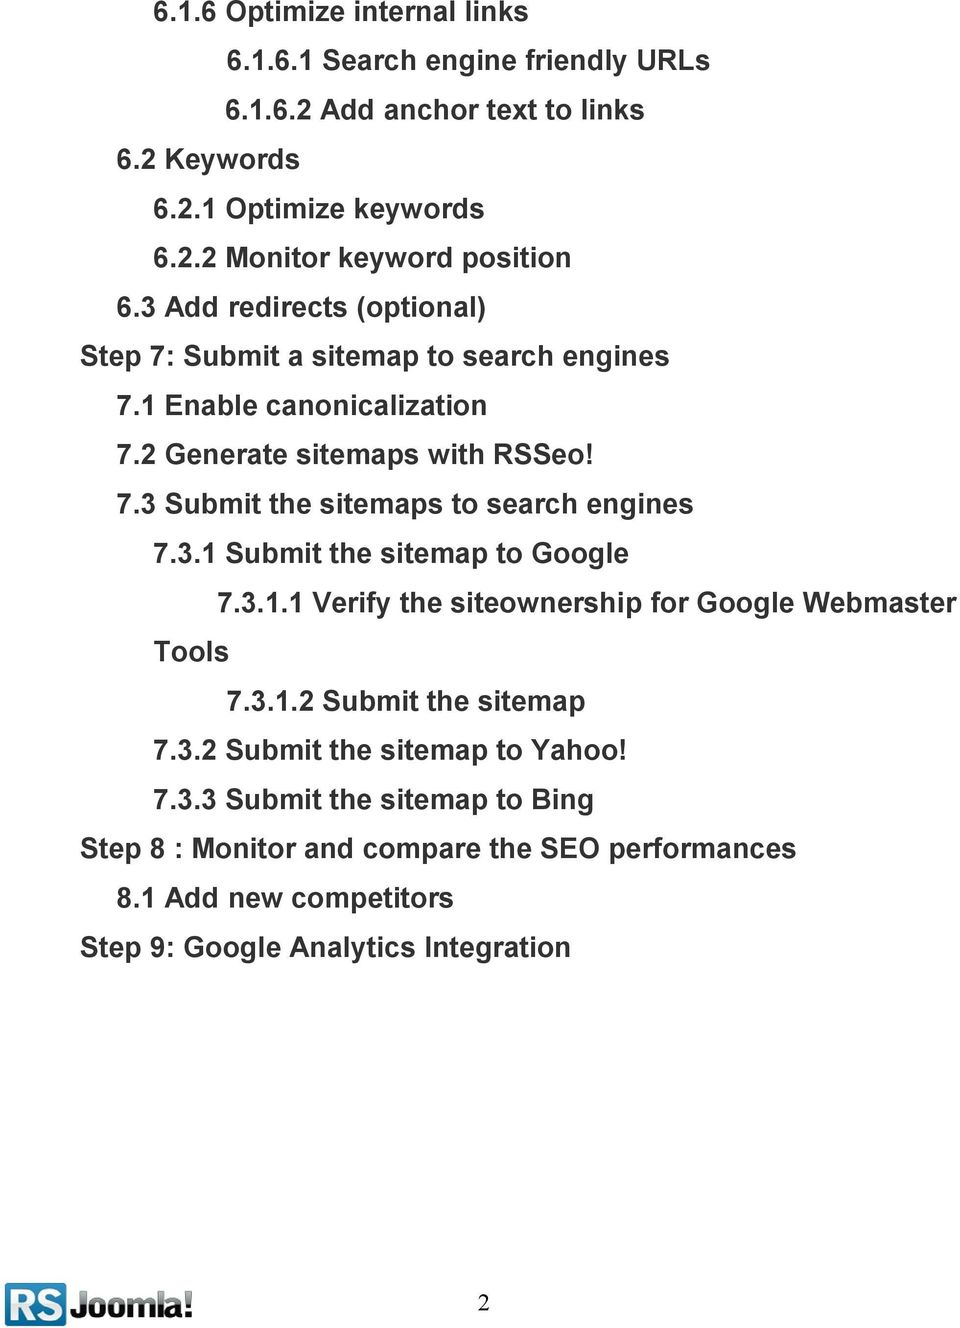 3.1 Submit the sitemap to Google 7.3.1.1 Verify the siteownership for Google Webmaster Tools 7.3.1.2 Submit the sitemap 7.3.2 Submit the sitemap to Yahoo! 7.3.3 Submit the sitemap to Bing Step 8 : Monitor and compare the SEO performances 8.